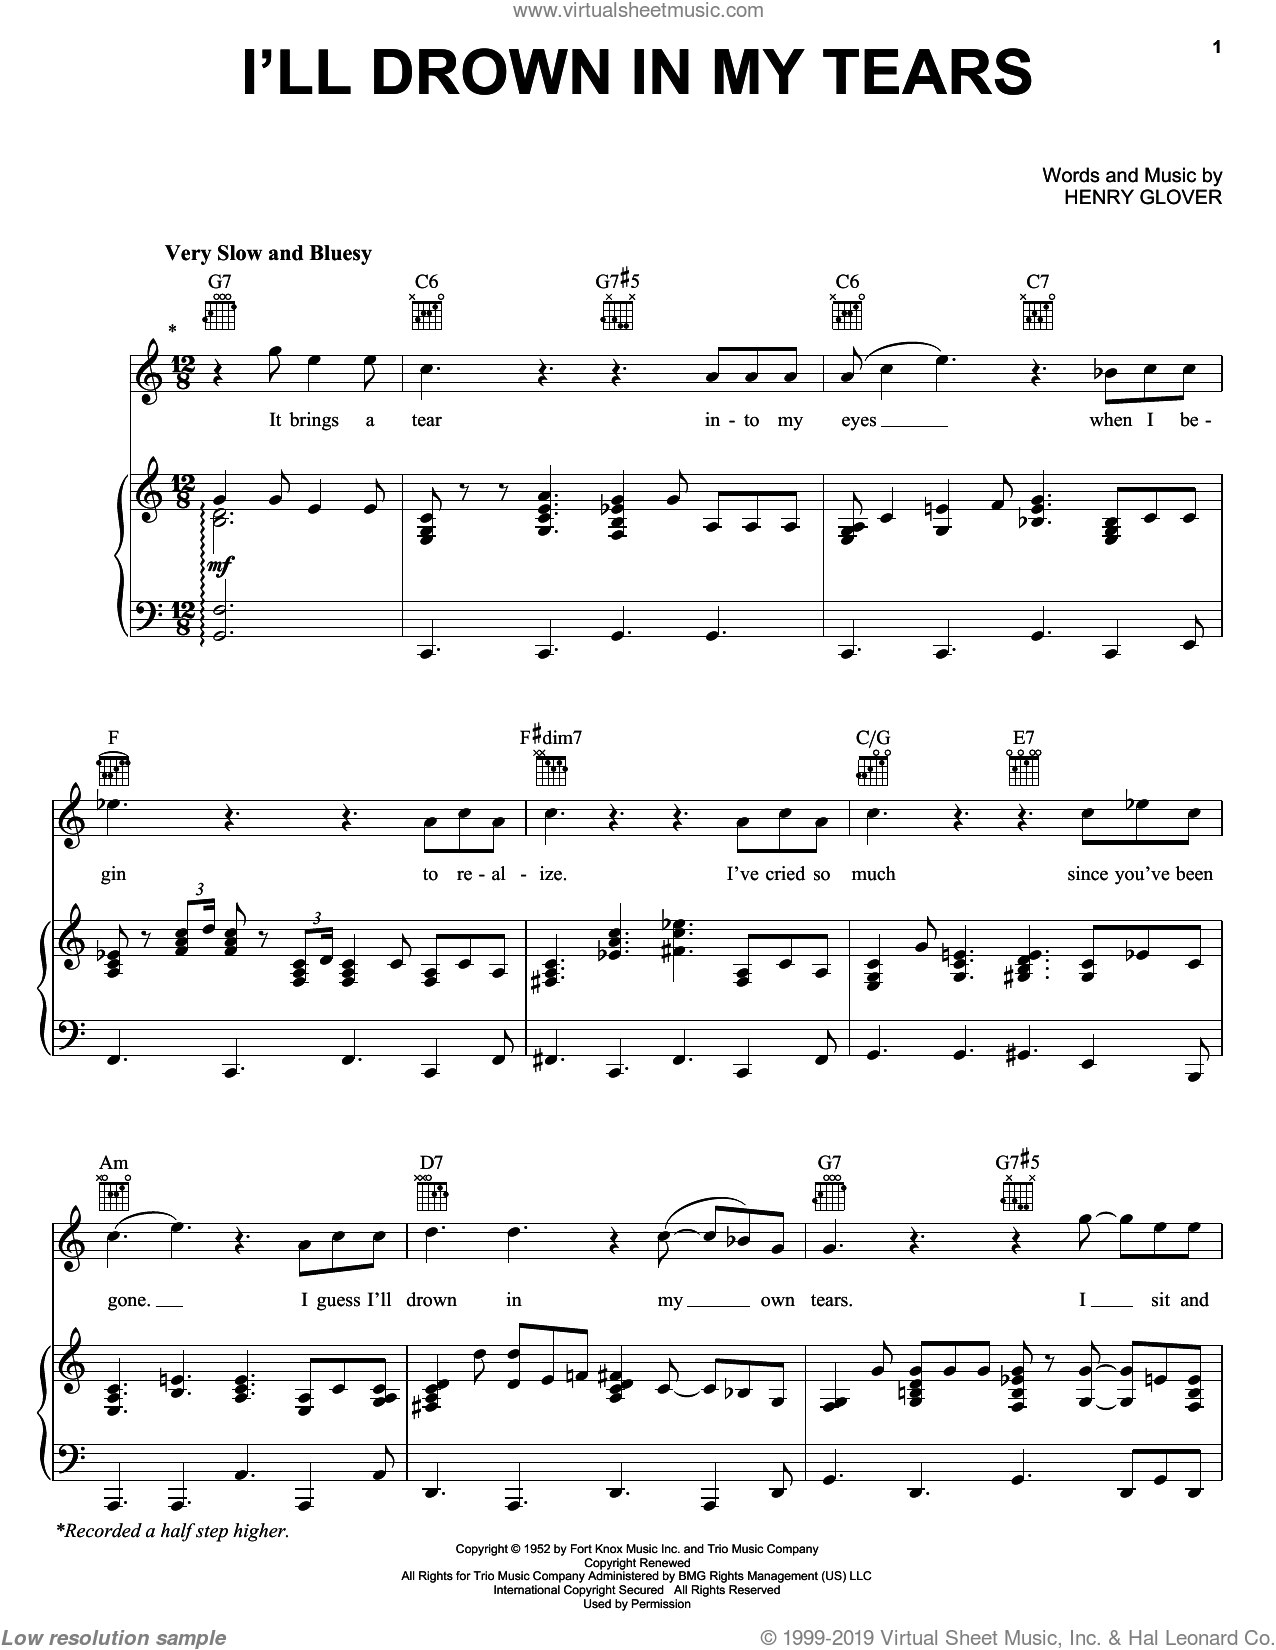 I'll Drown In My Tears sheet music for voice, piano or guitar by Ray Charles. Score Image Preview.